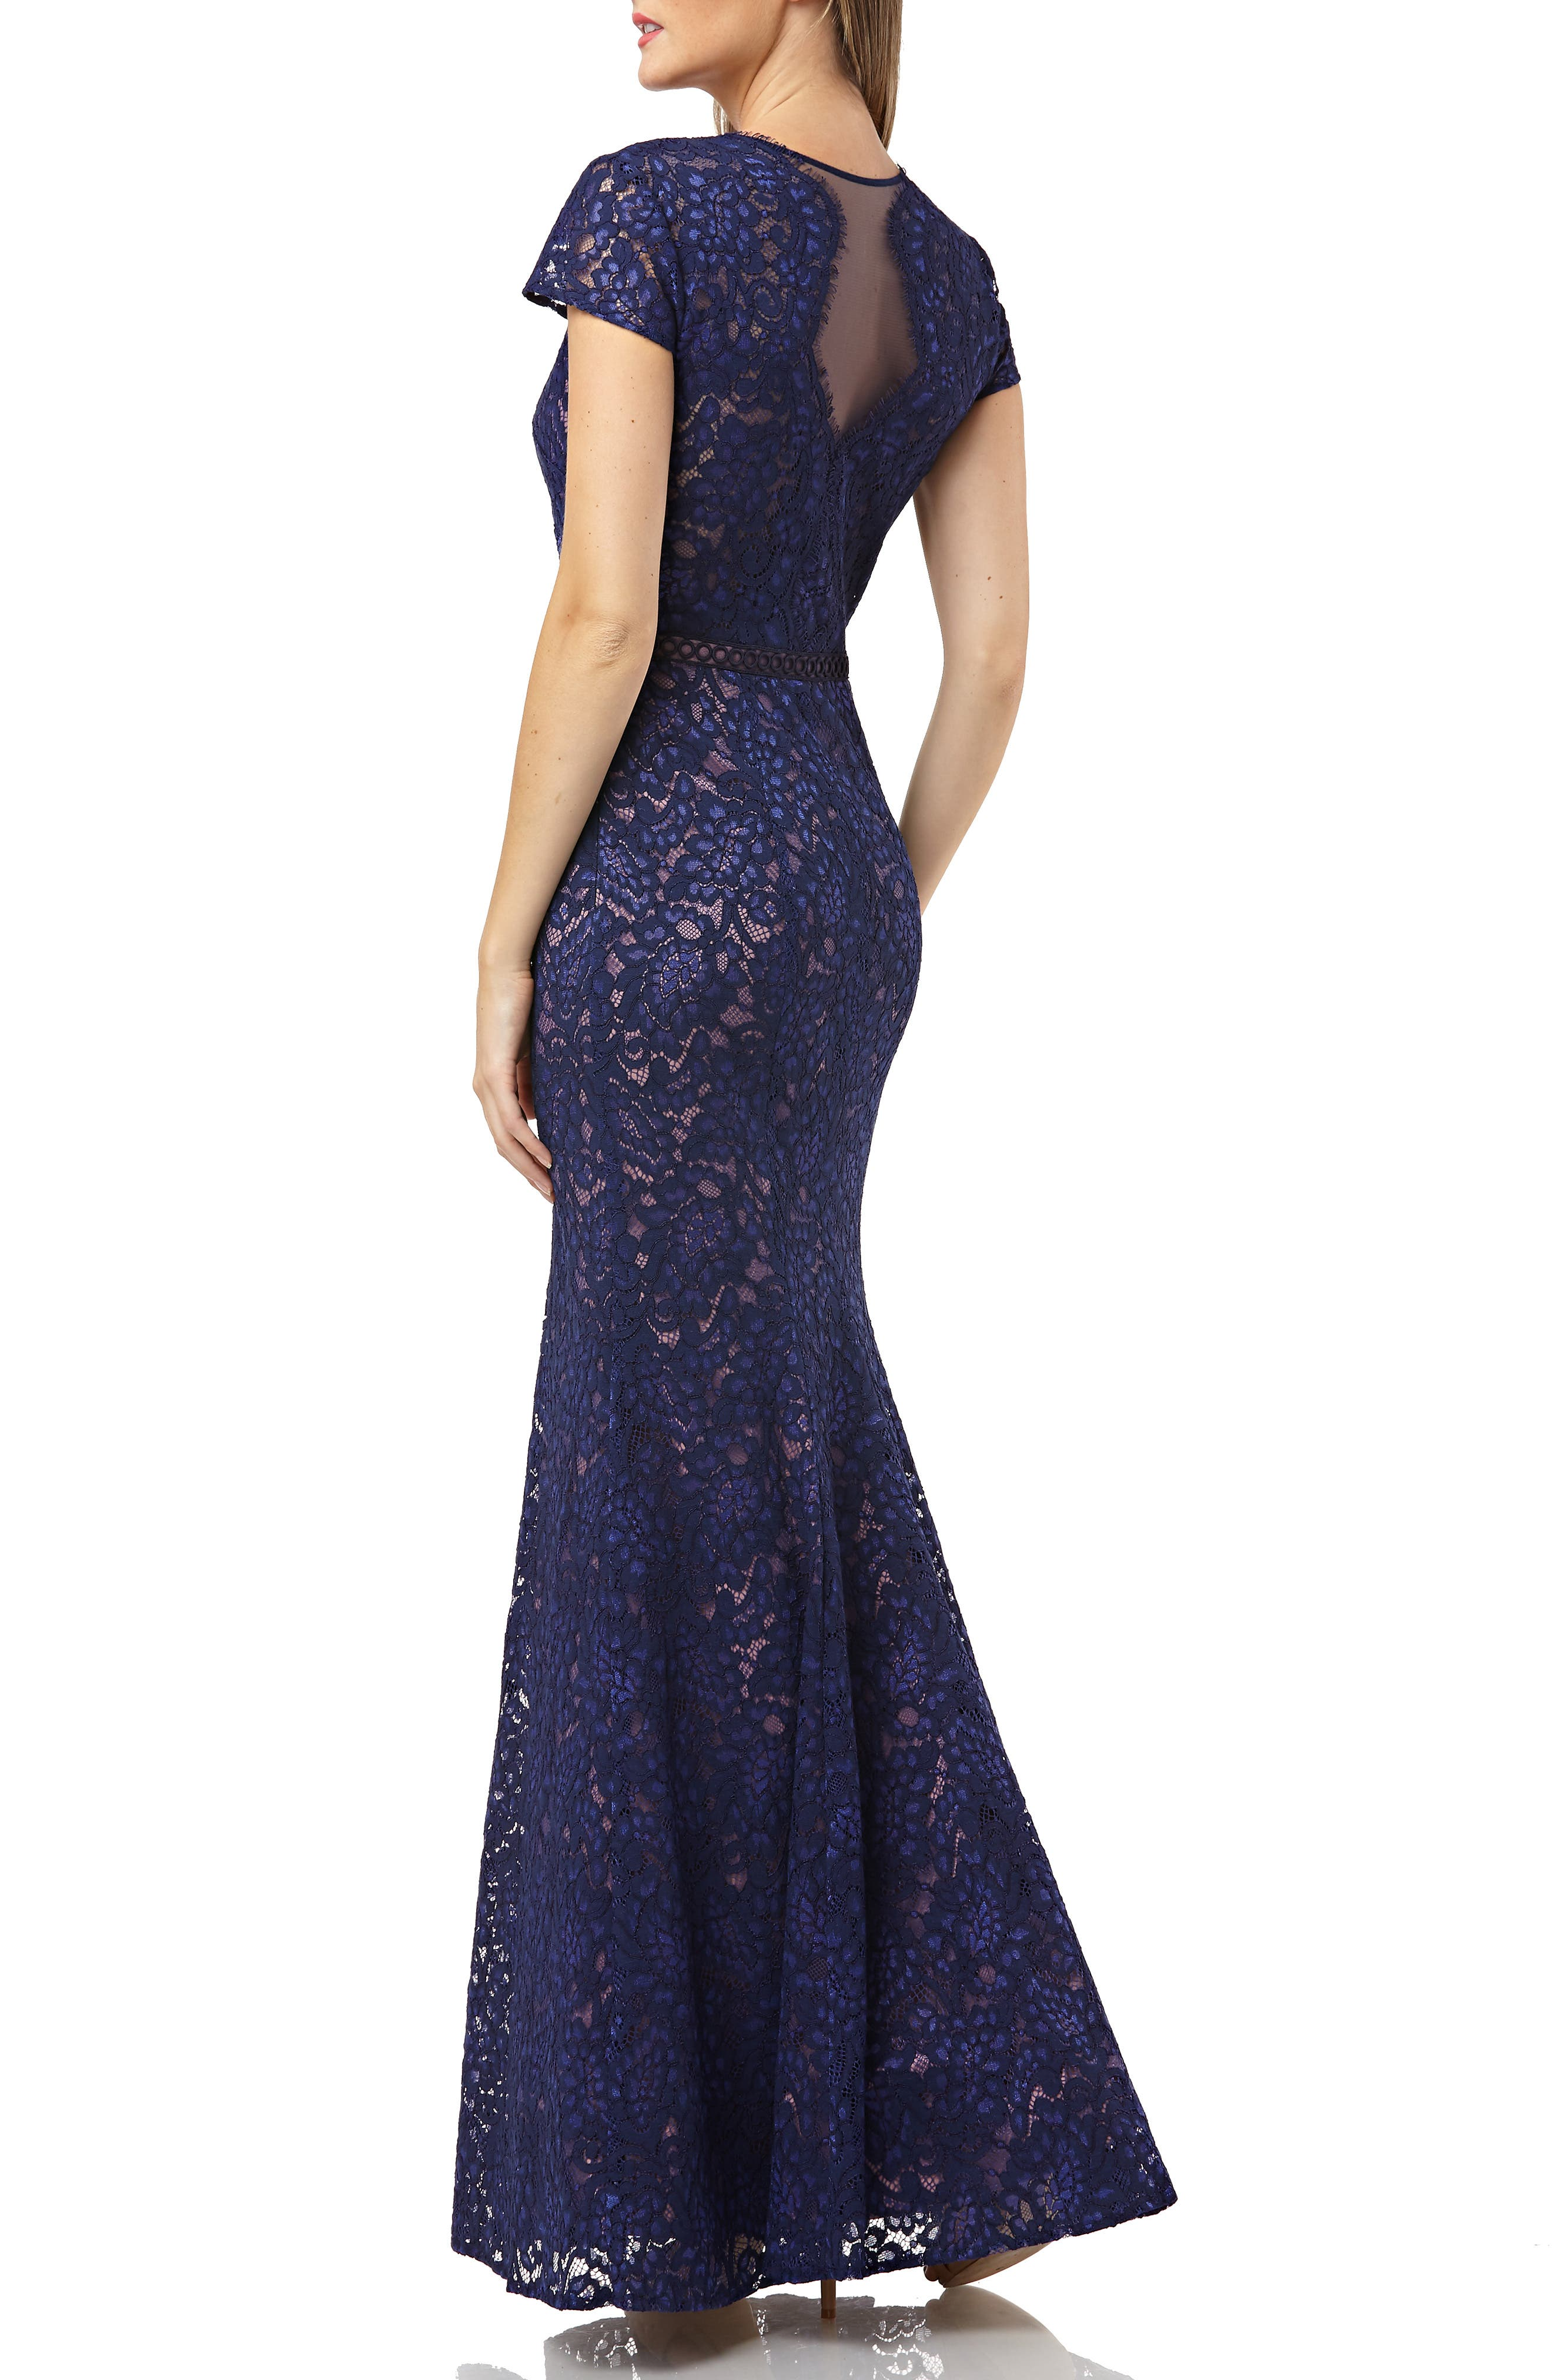 JS COLLECTIONS, Lace Mermaid Gown, Alternate thumbnail 2, color, NAVY/ ROSE